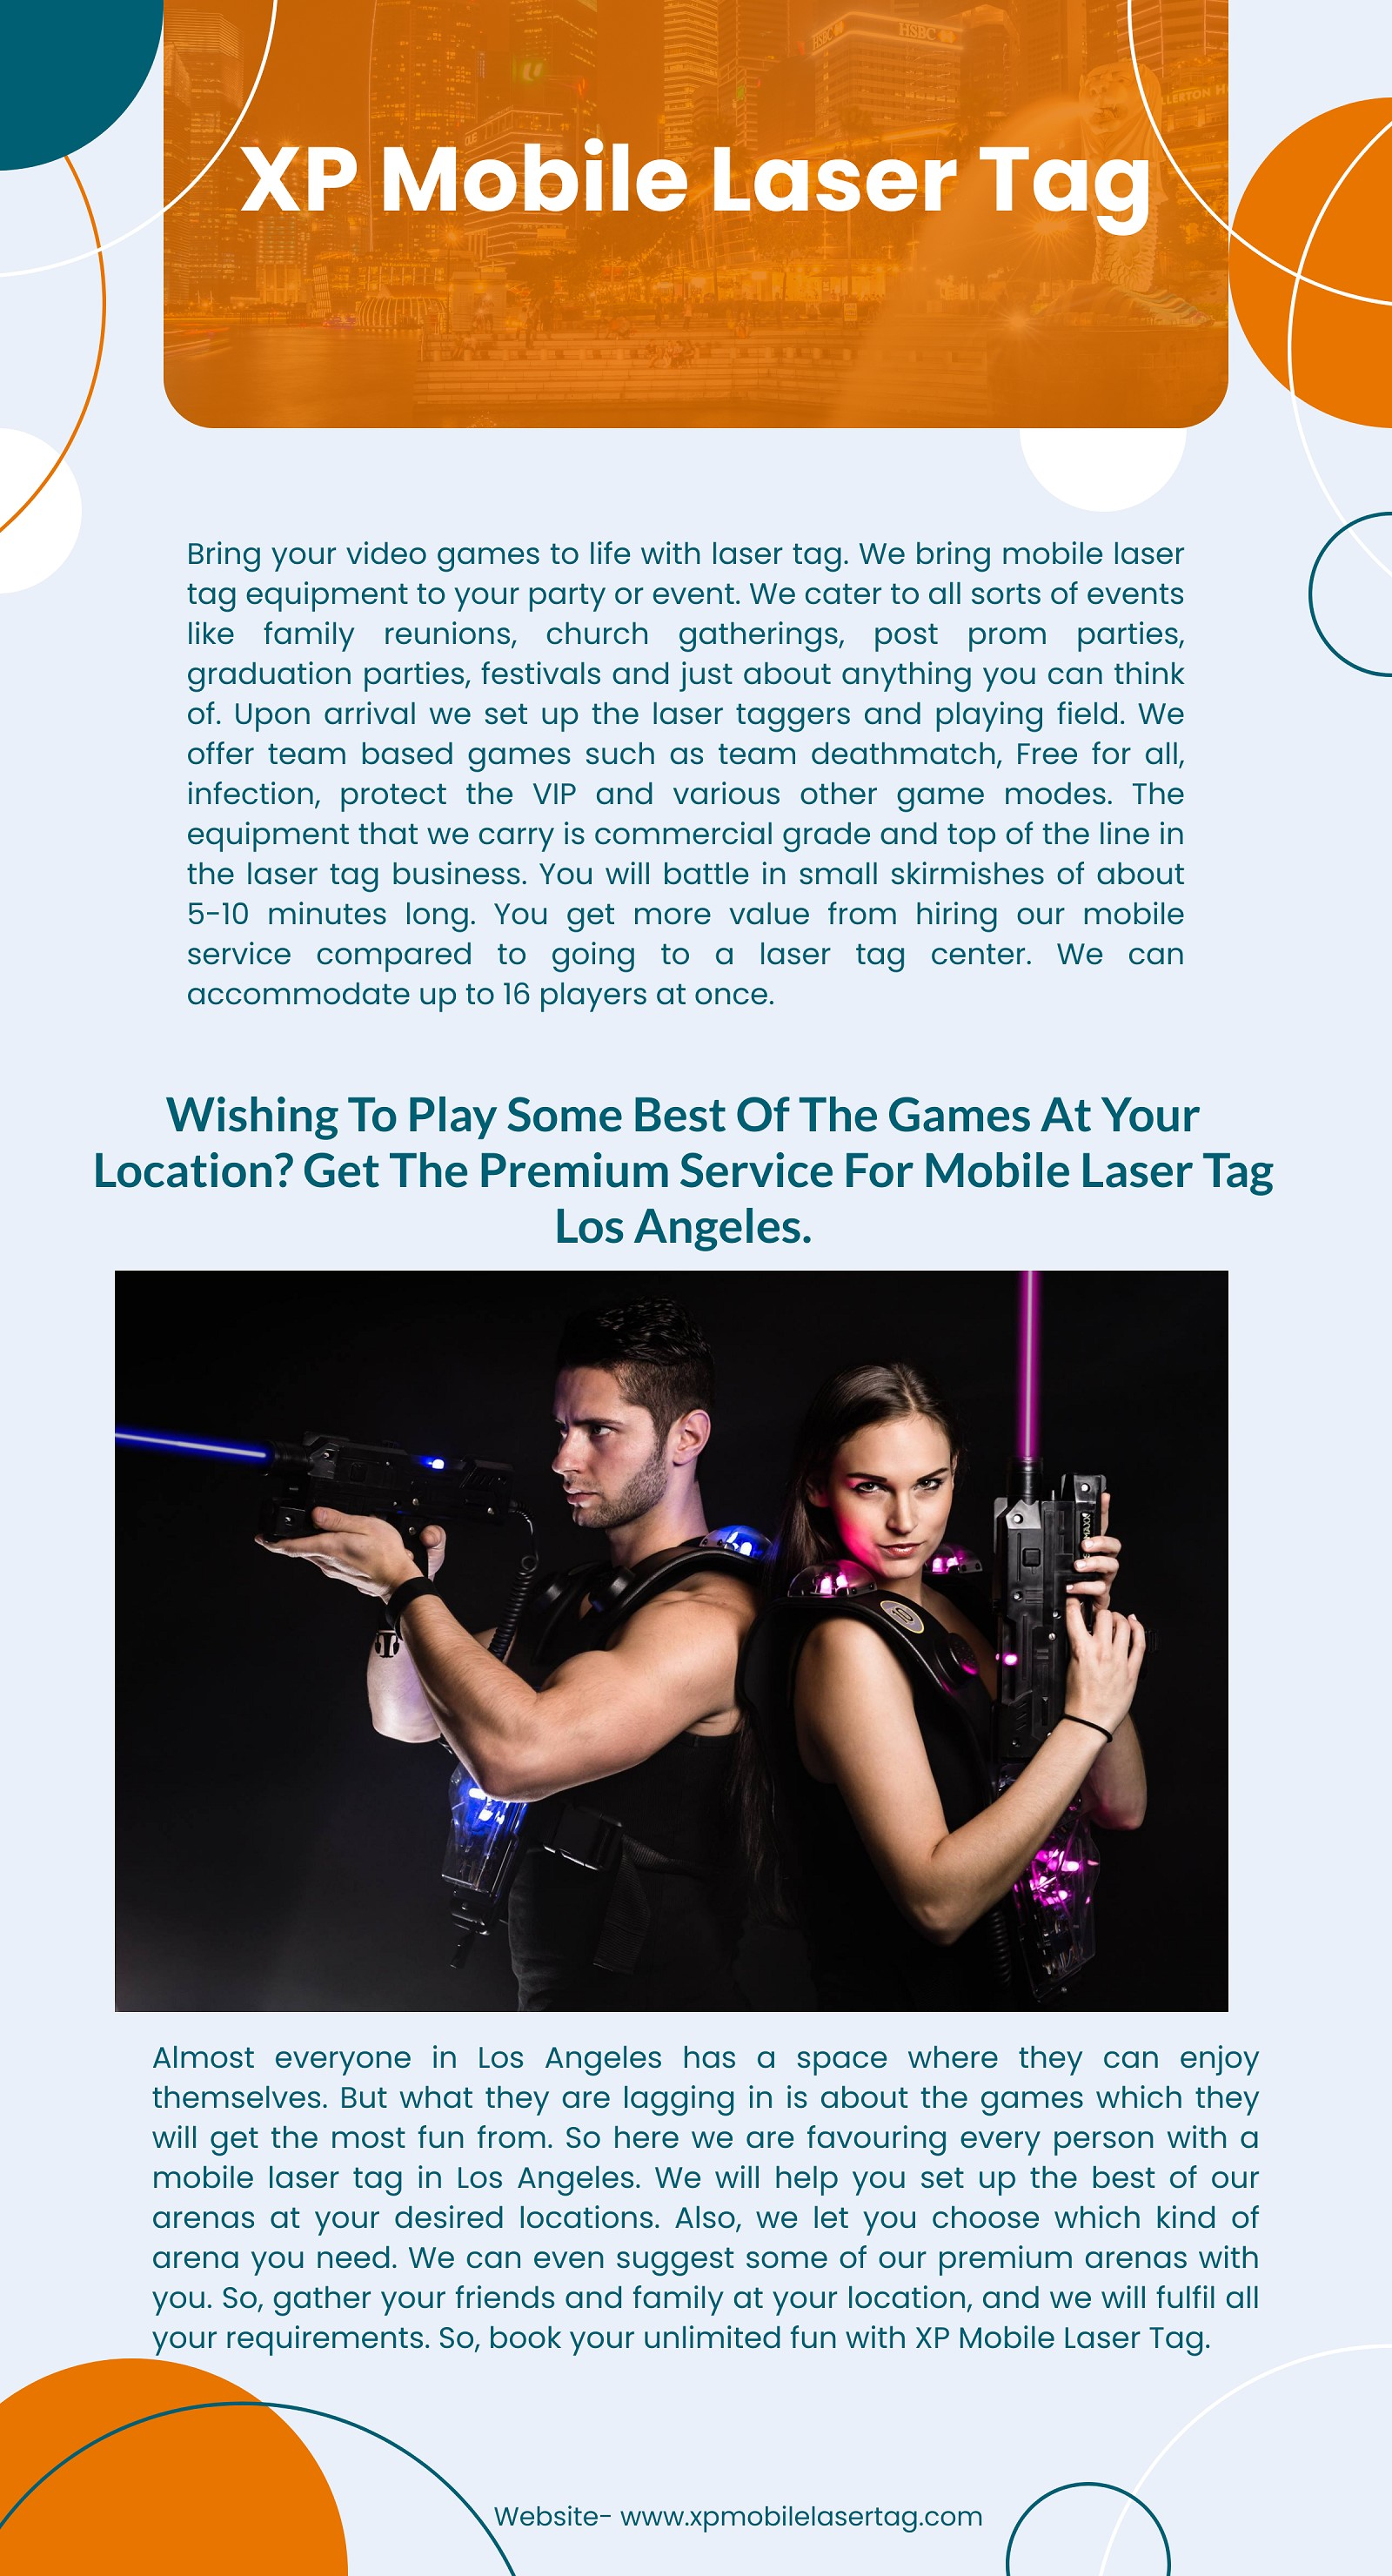 Let's take an adventurous break from our routine life with laser tag West Covina: